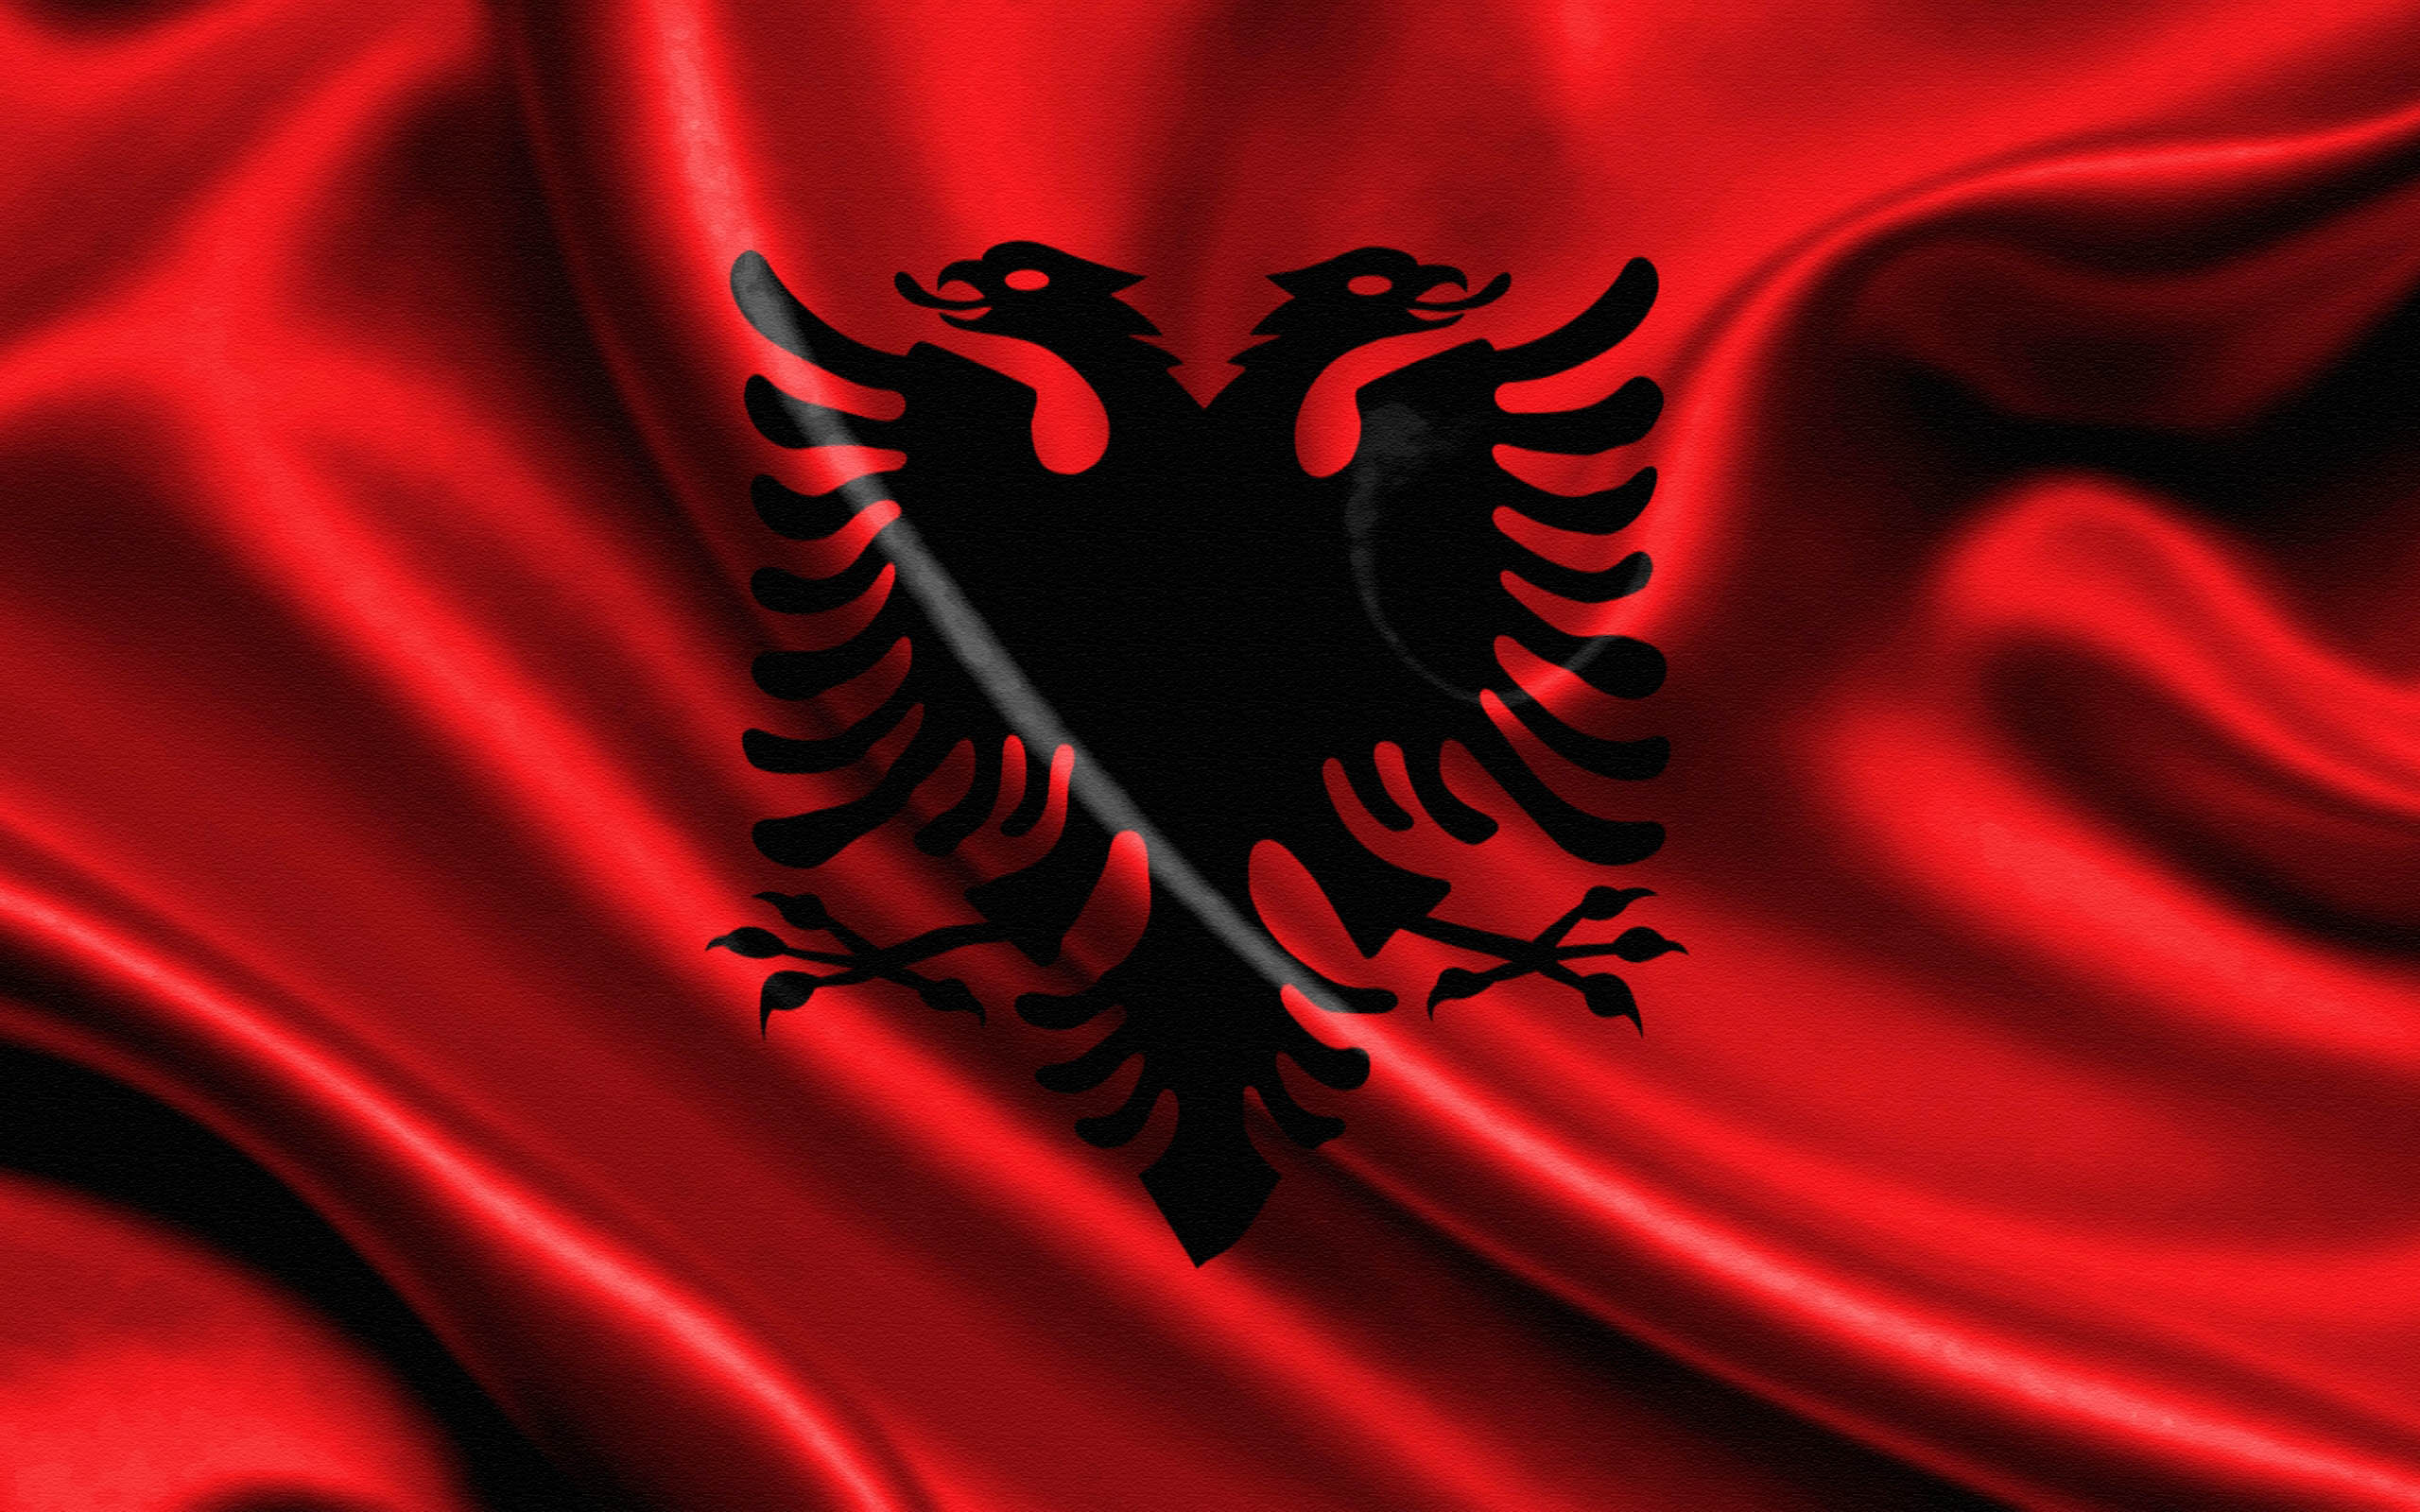 HQ Flag Of Albania Wallpapers | File 445.57Kb